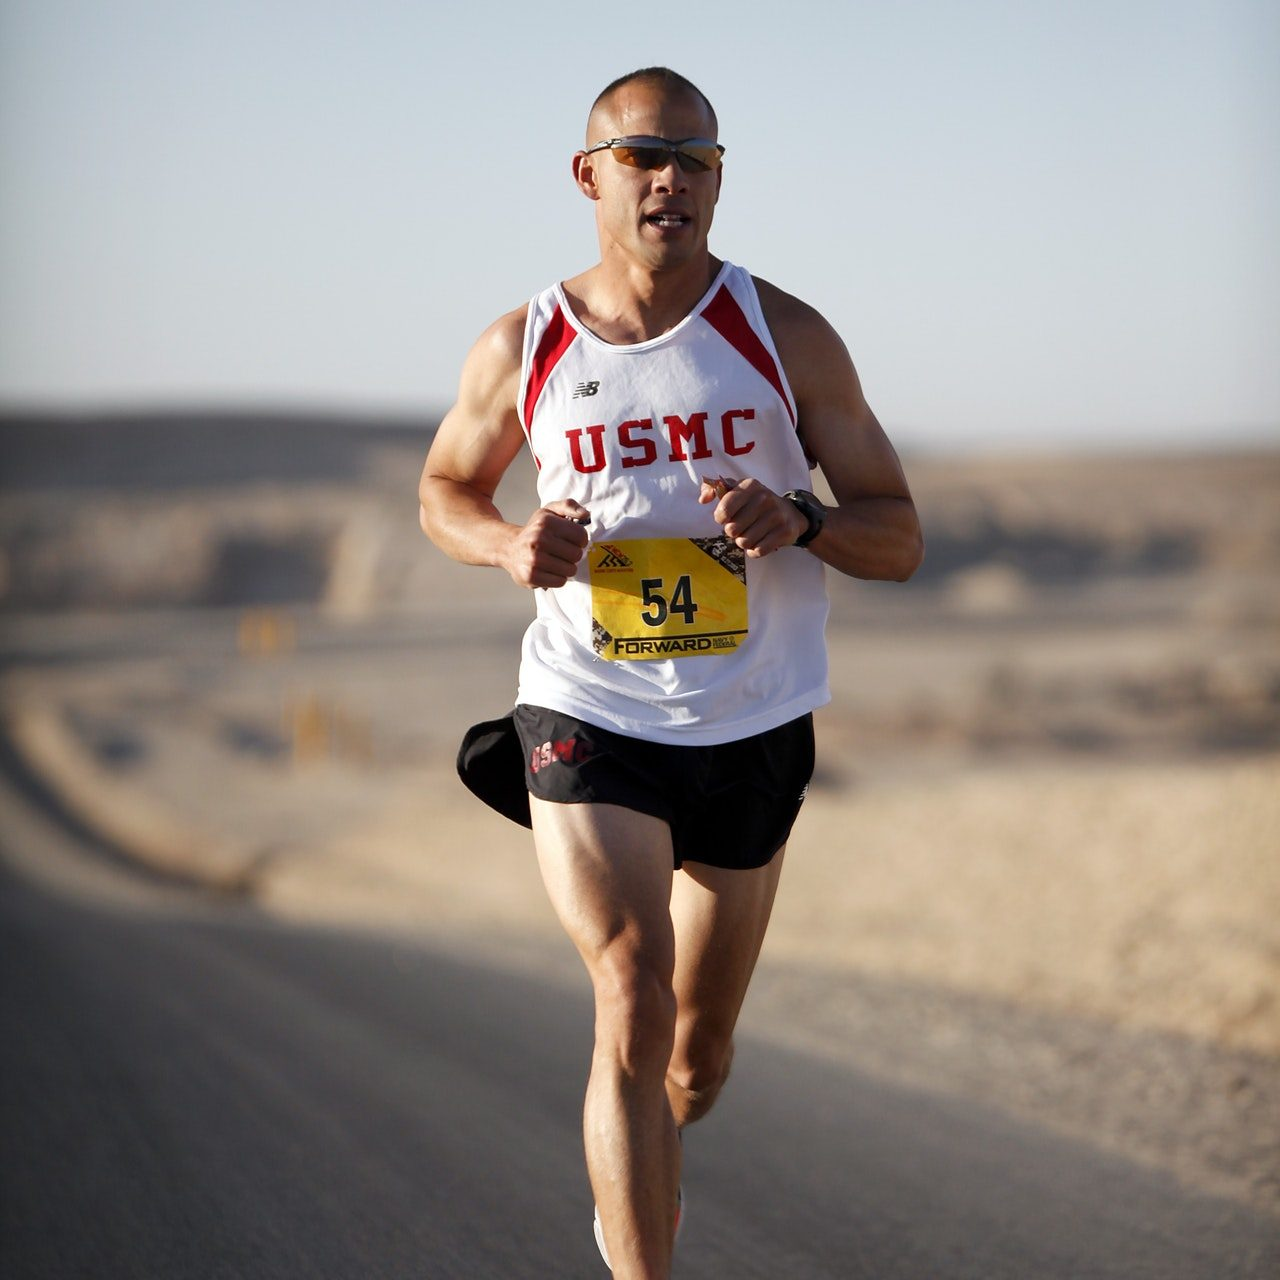 man-in-white-jersey-while-running-35009